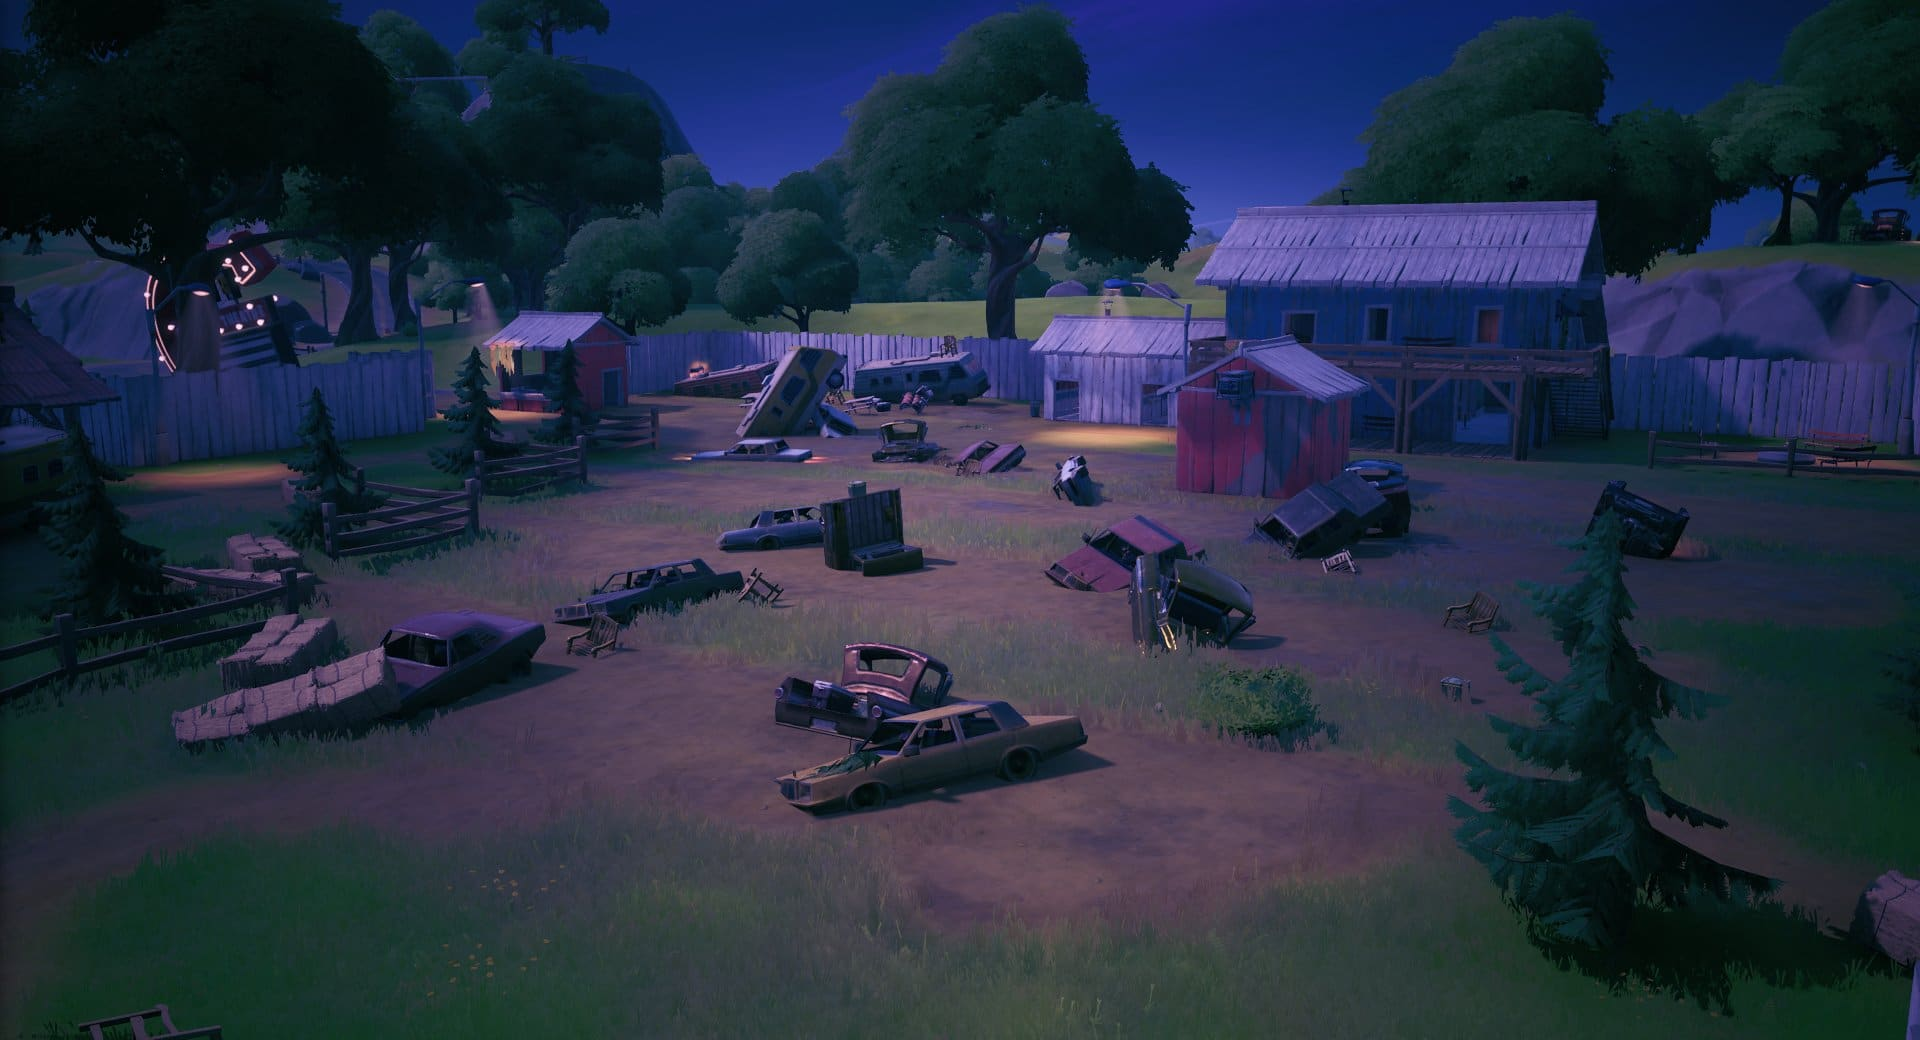 Leaks Show Fortnite Season 3 Map Locations After The Water Recedes